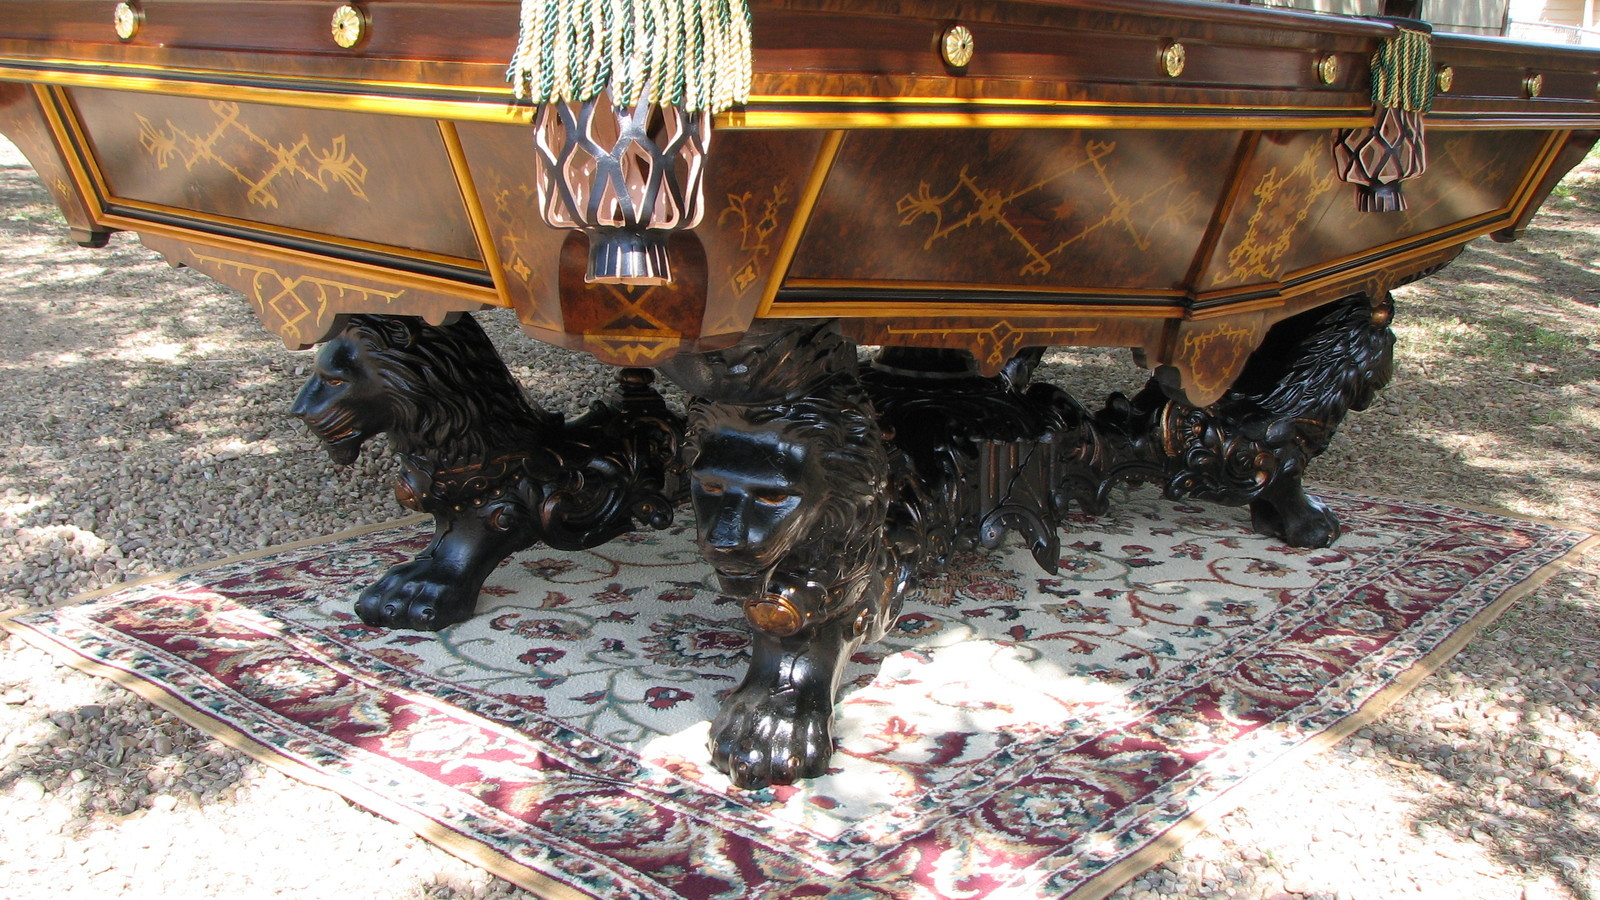 ANTIQUE BRUNSWICK VICTORIAN POOL TABLE Antiques Of America And - Brunswick monarch pool table for sale